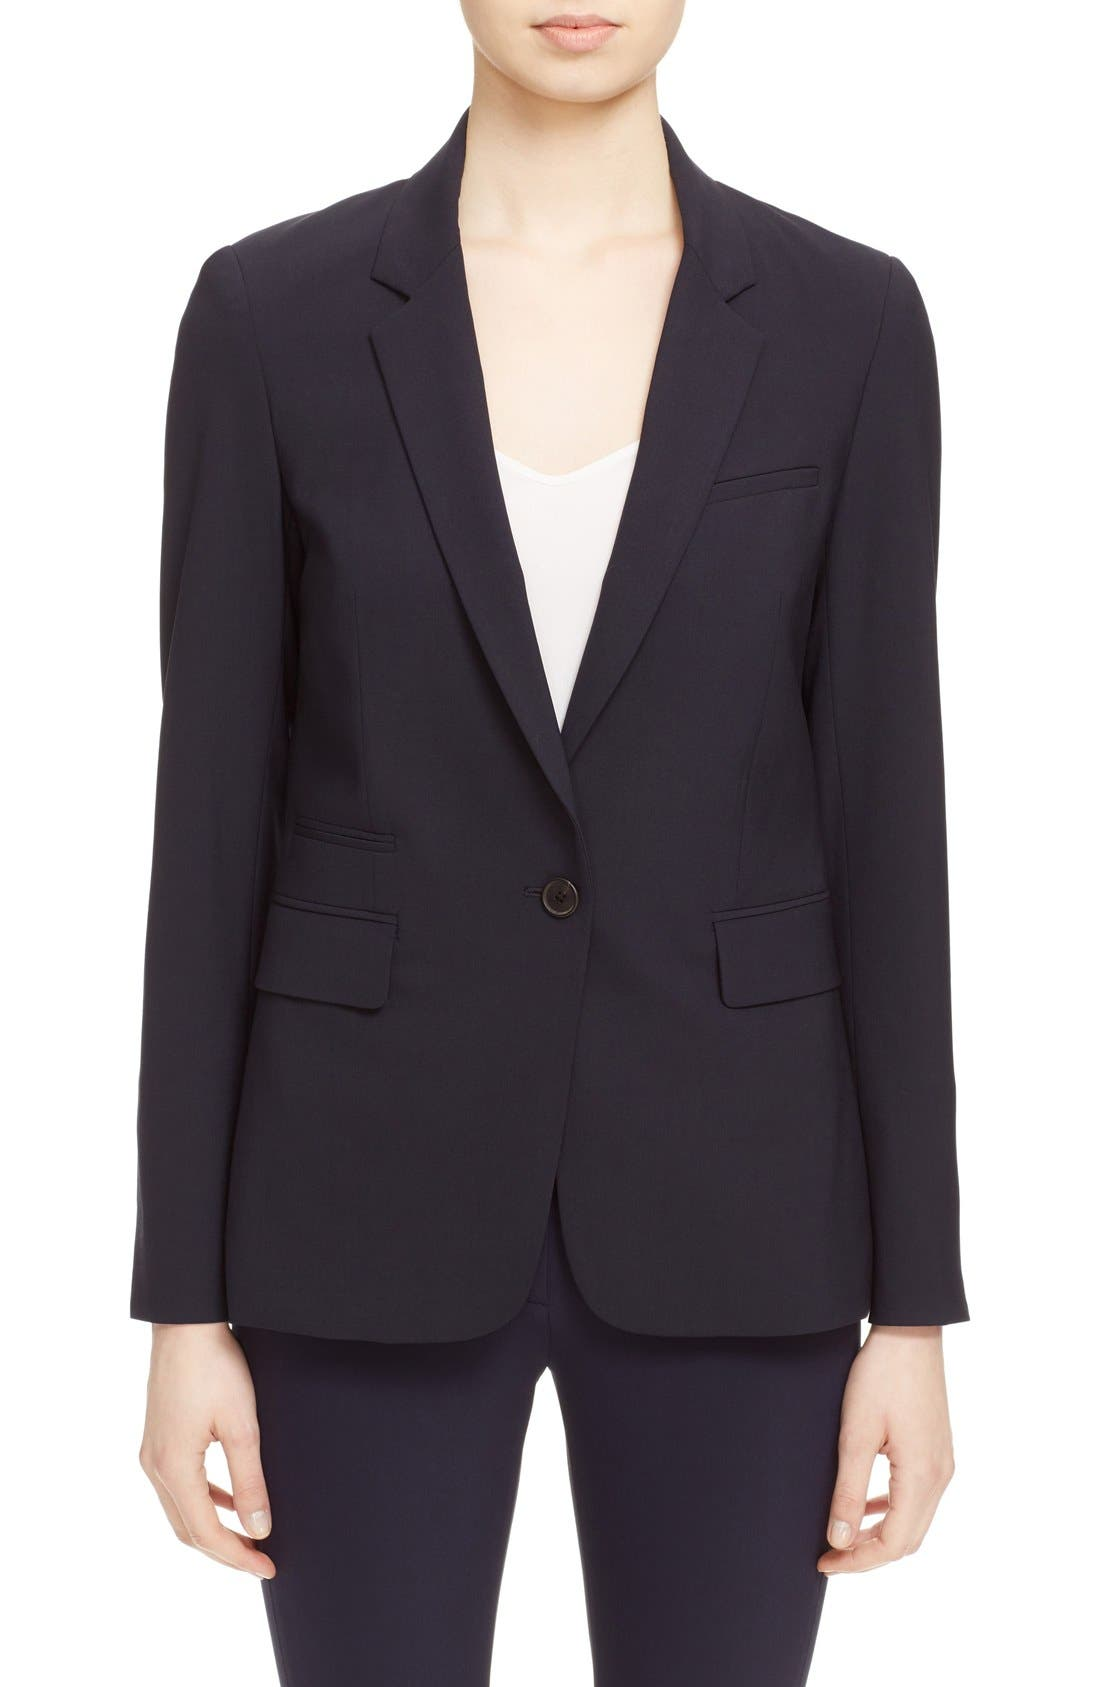 Alternate Image 1 Selected - Veronica Beard 'Classic' Lambswool Blend Single Button Blazer